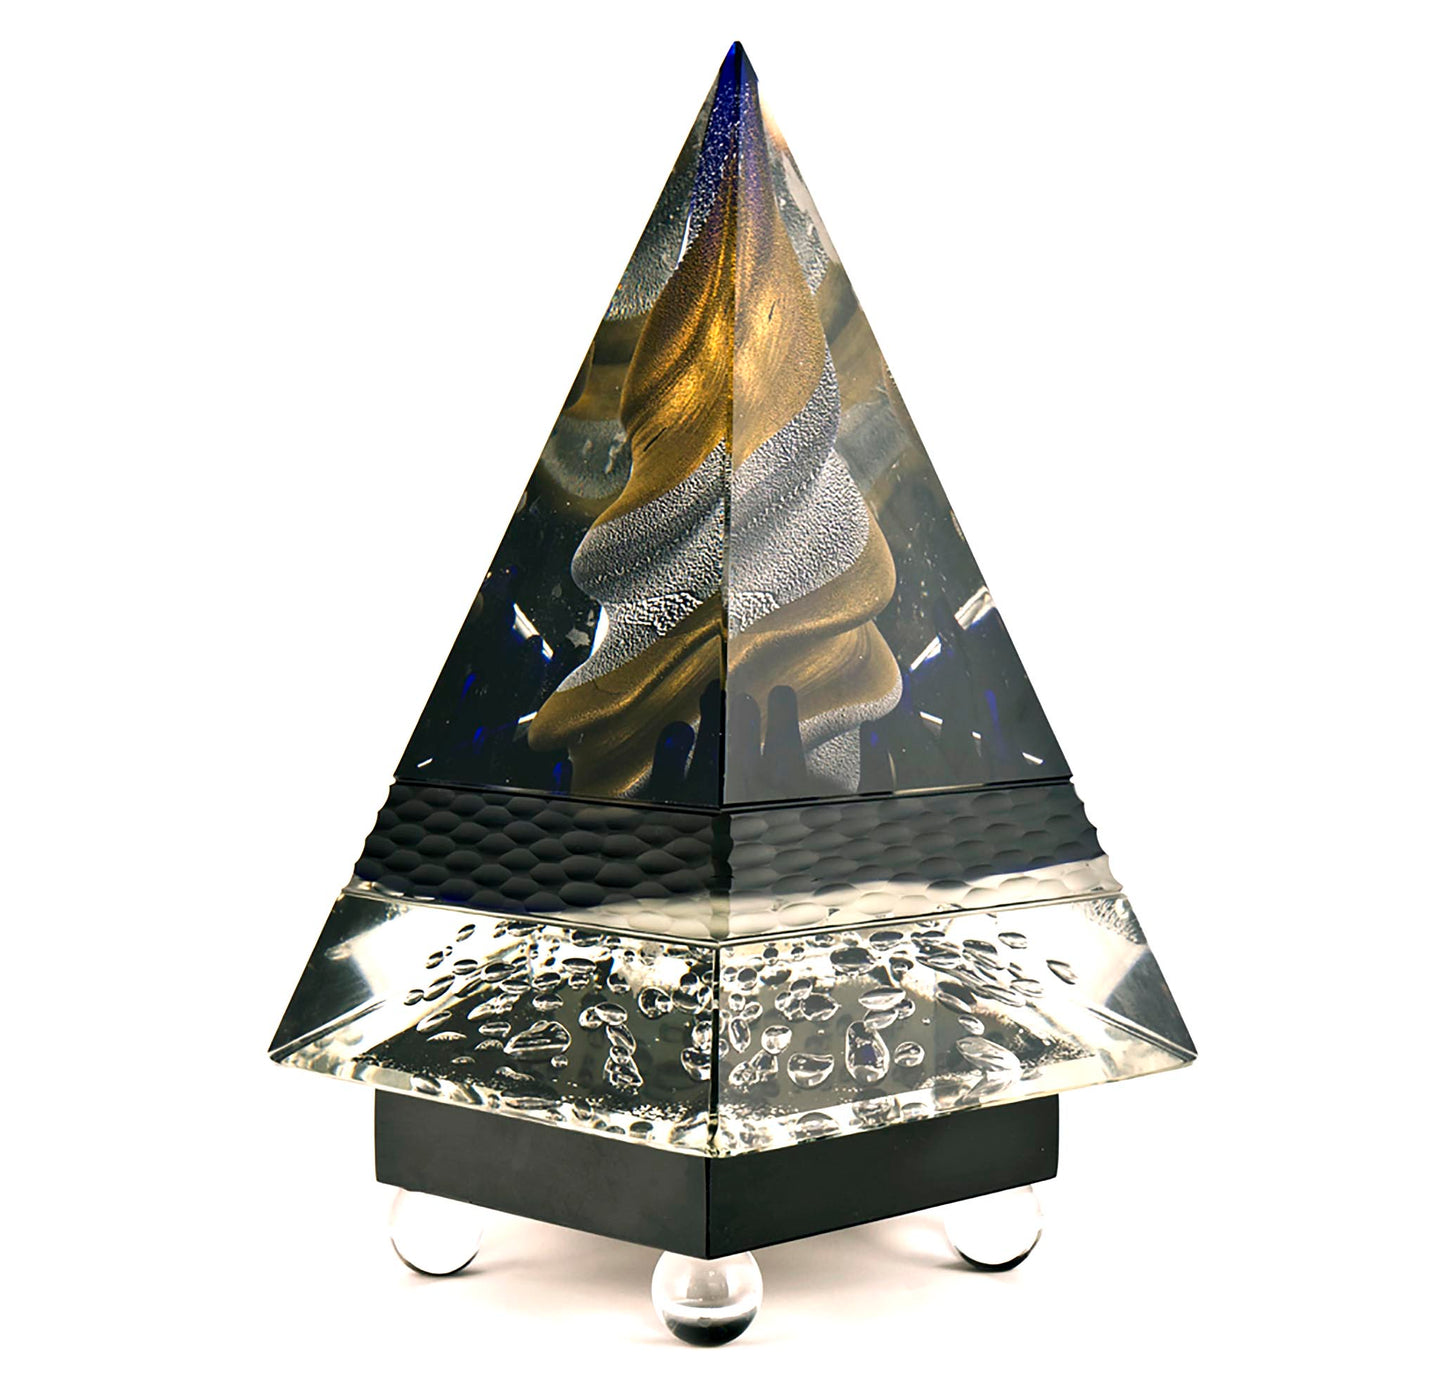 PYRAMID Murano Glass Sculpture